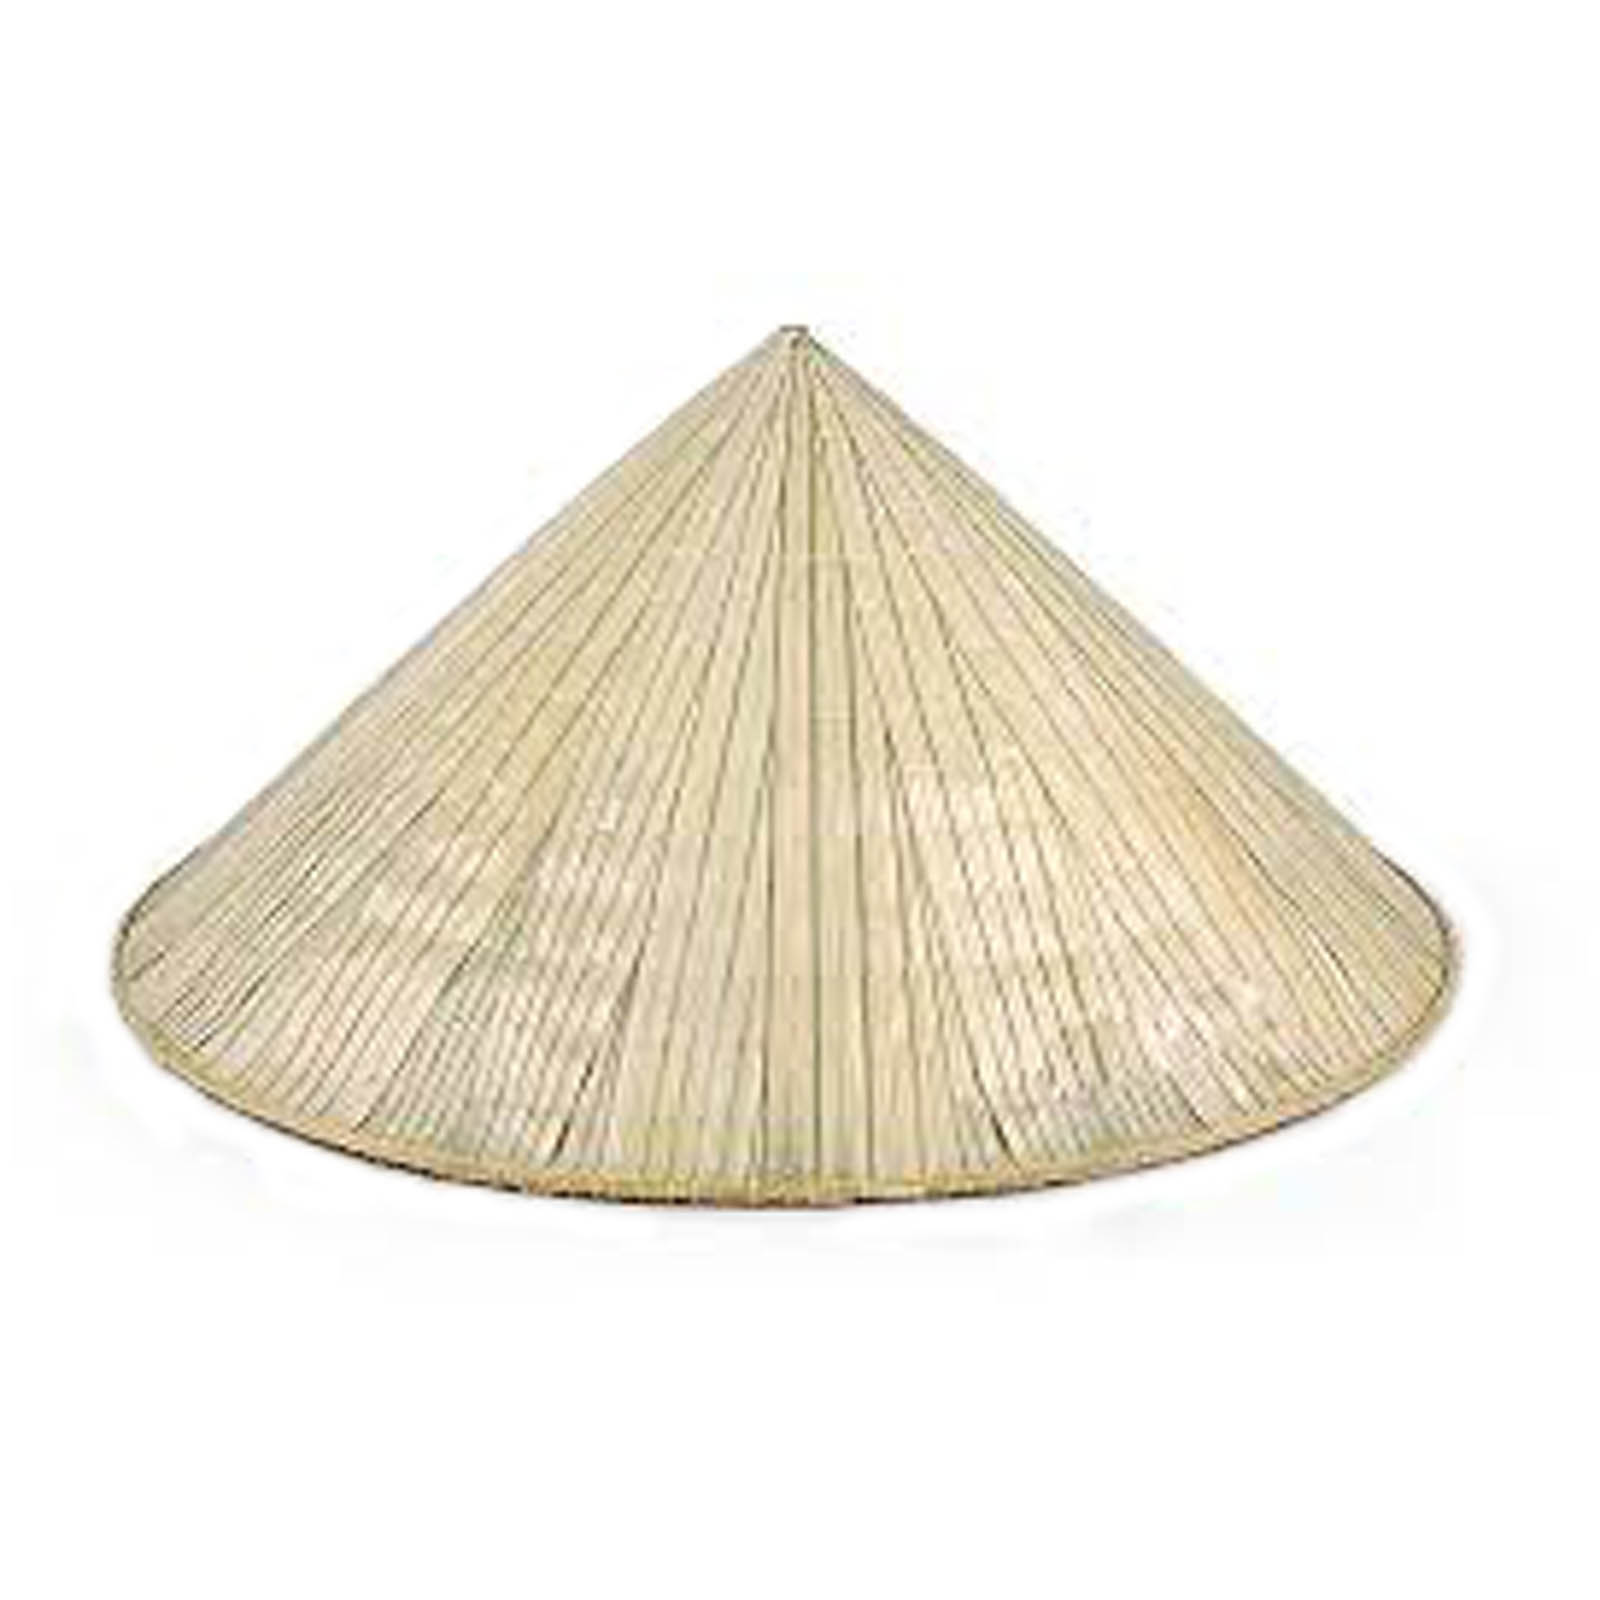 Coolie Hat: Traditional Chinese Coolie Hat